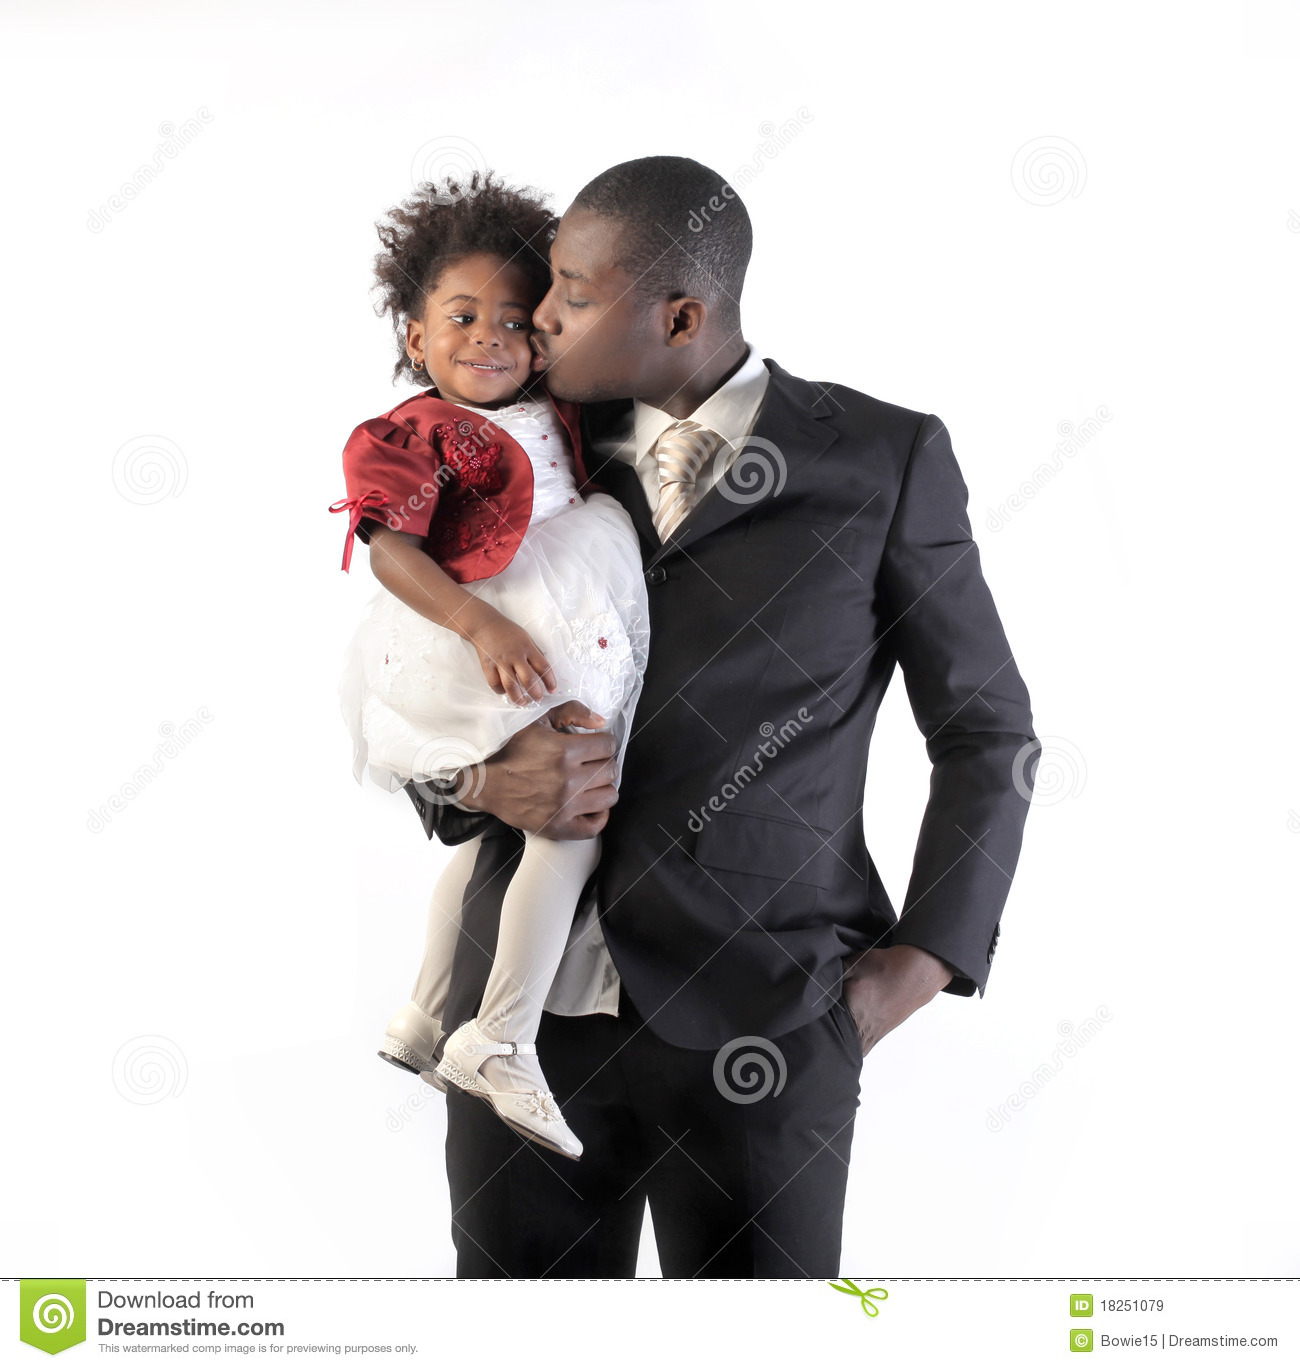 Download Affection stock image. Image of african, portrait, background - 18251079